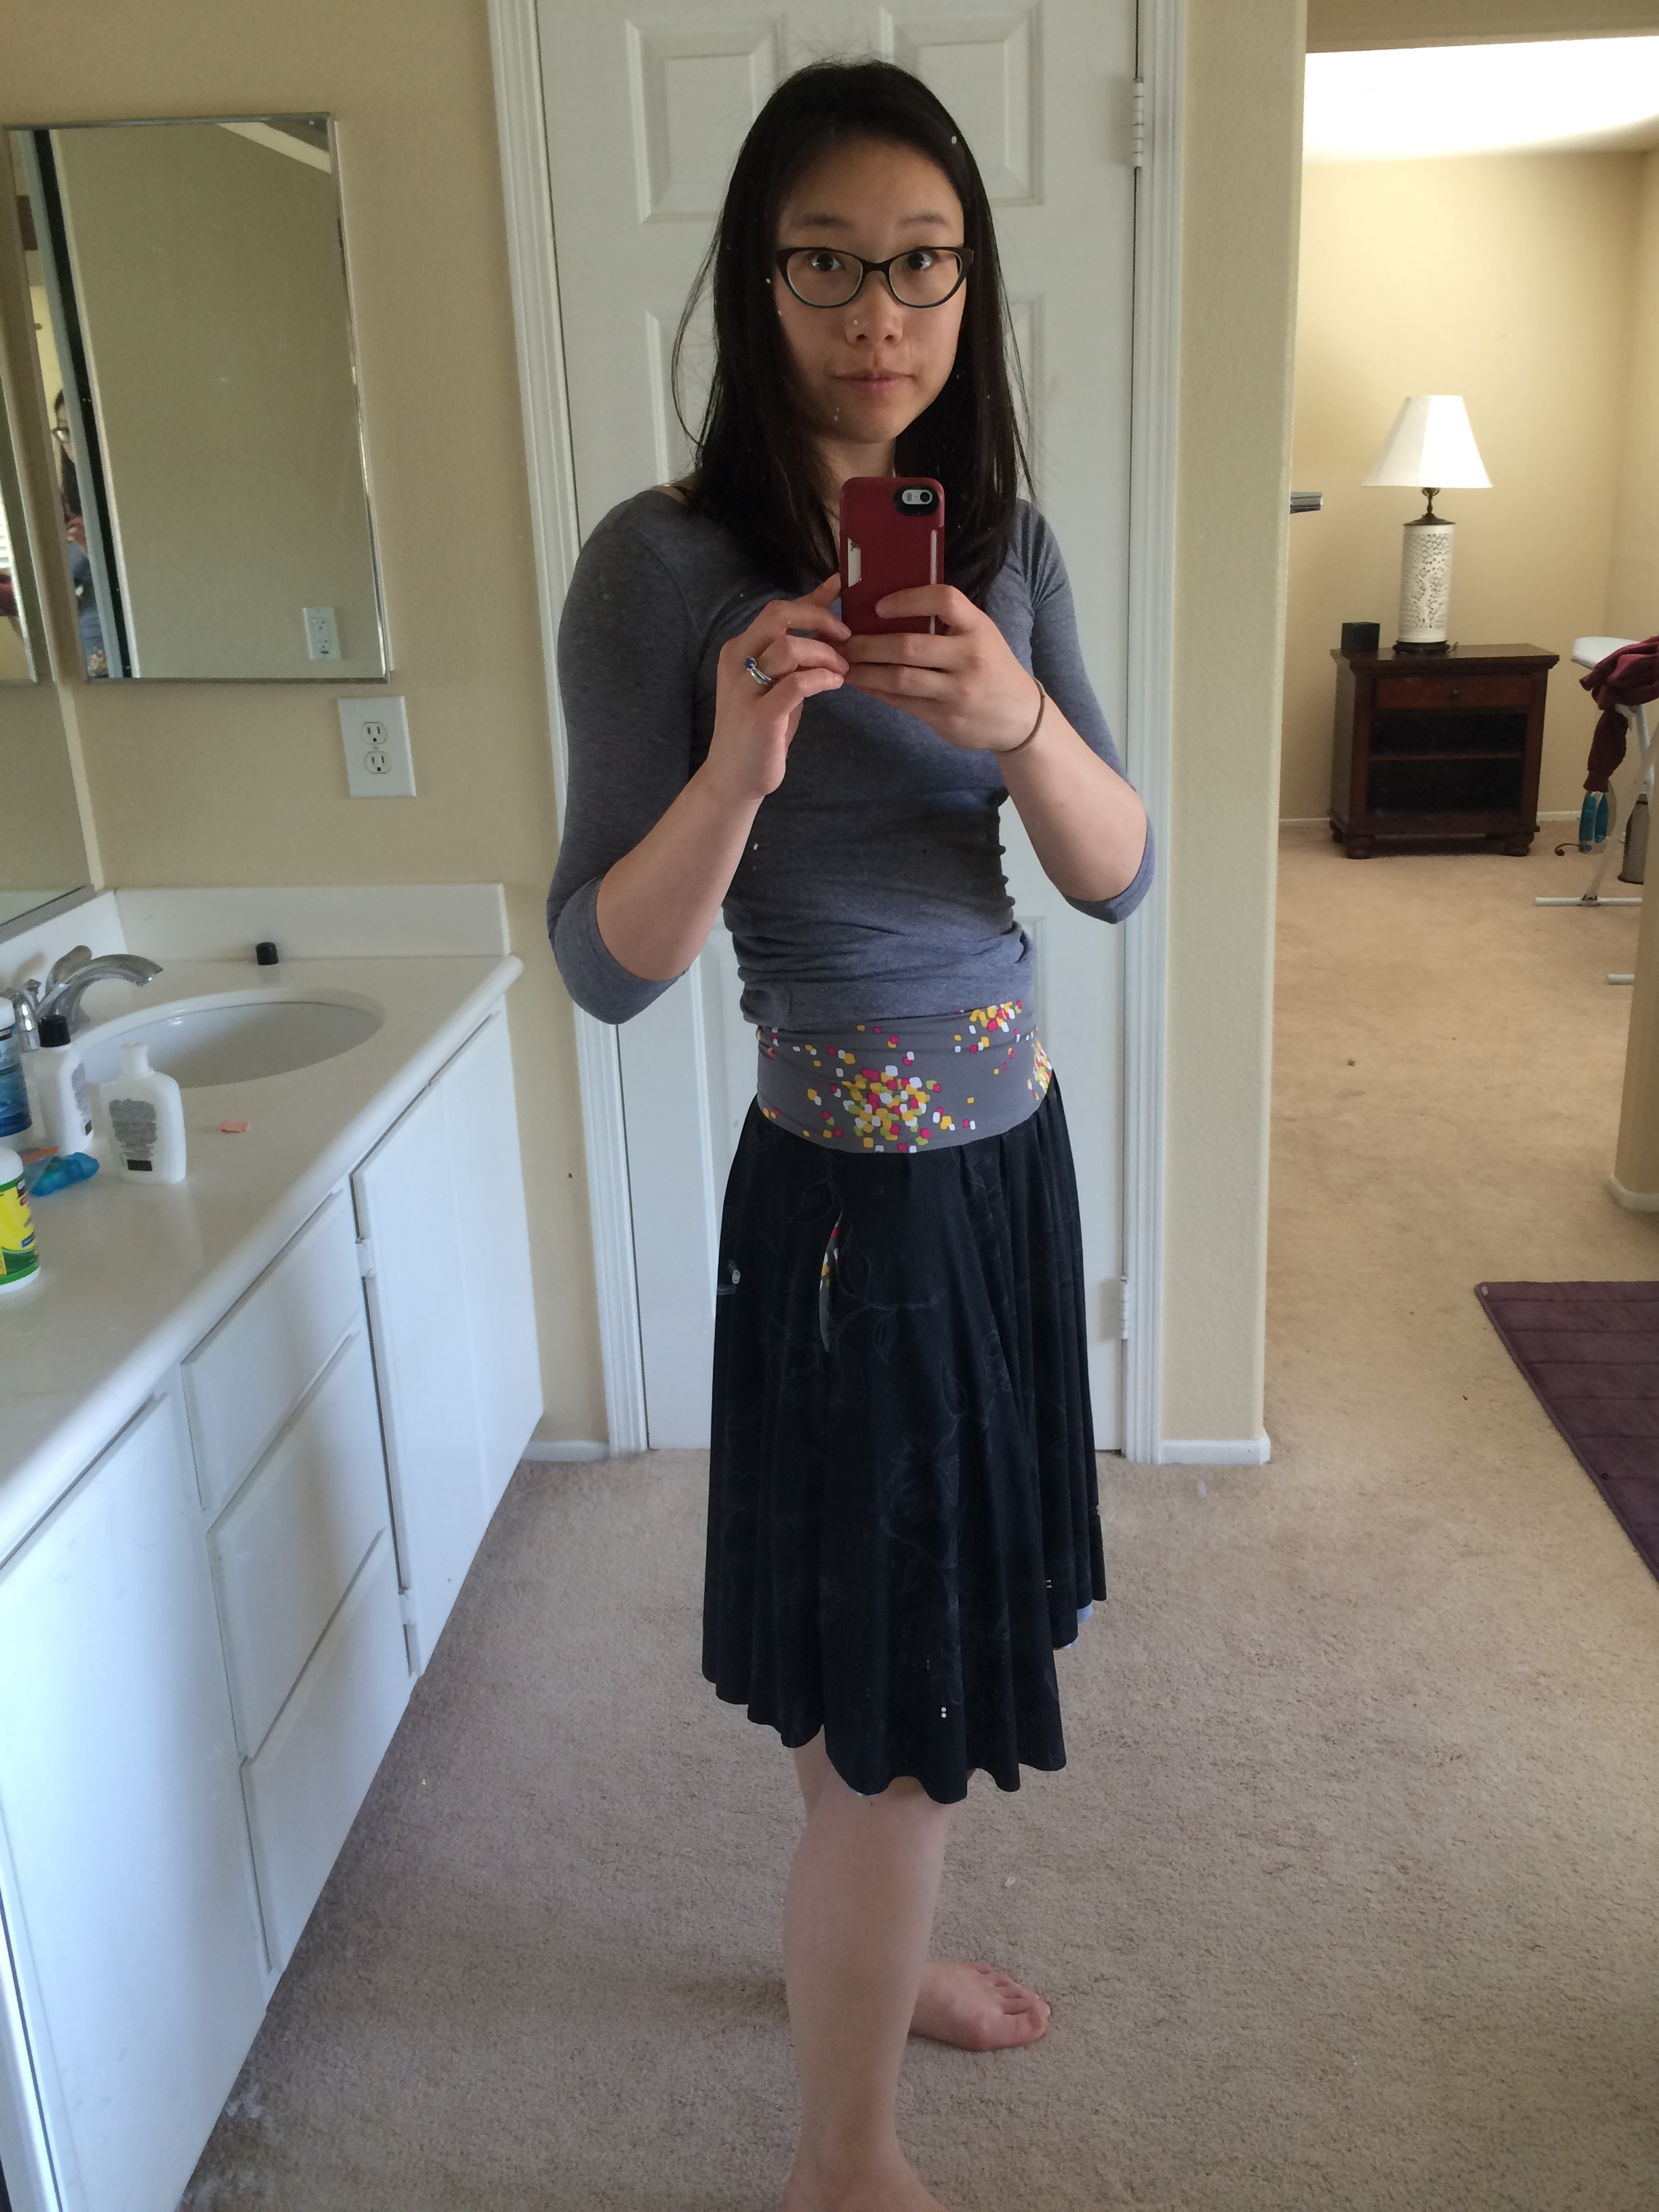 Black floral side with contrasting waistband. It's hard to tell in the pictures, but there are subtle flowers outlined in gray on the black side.